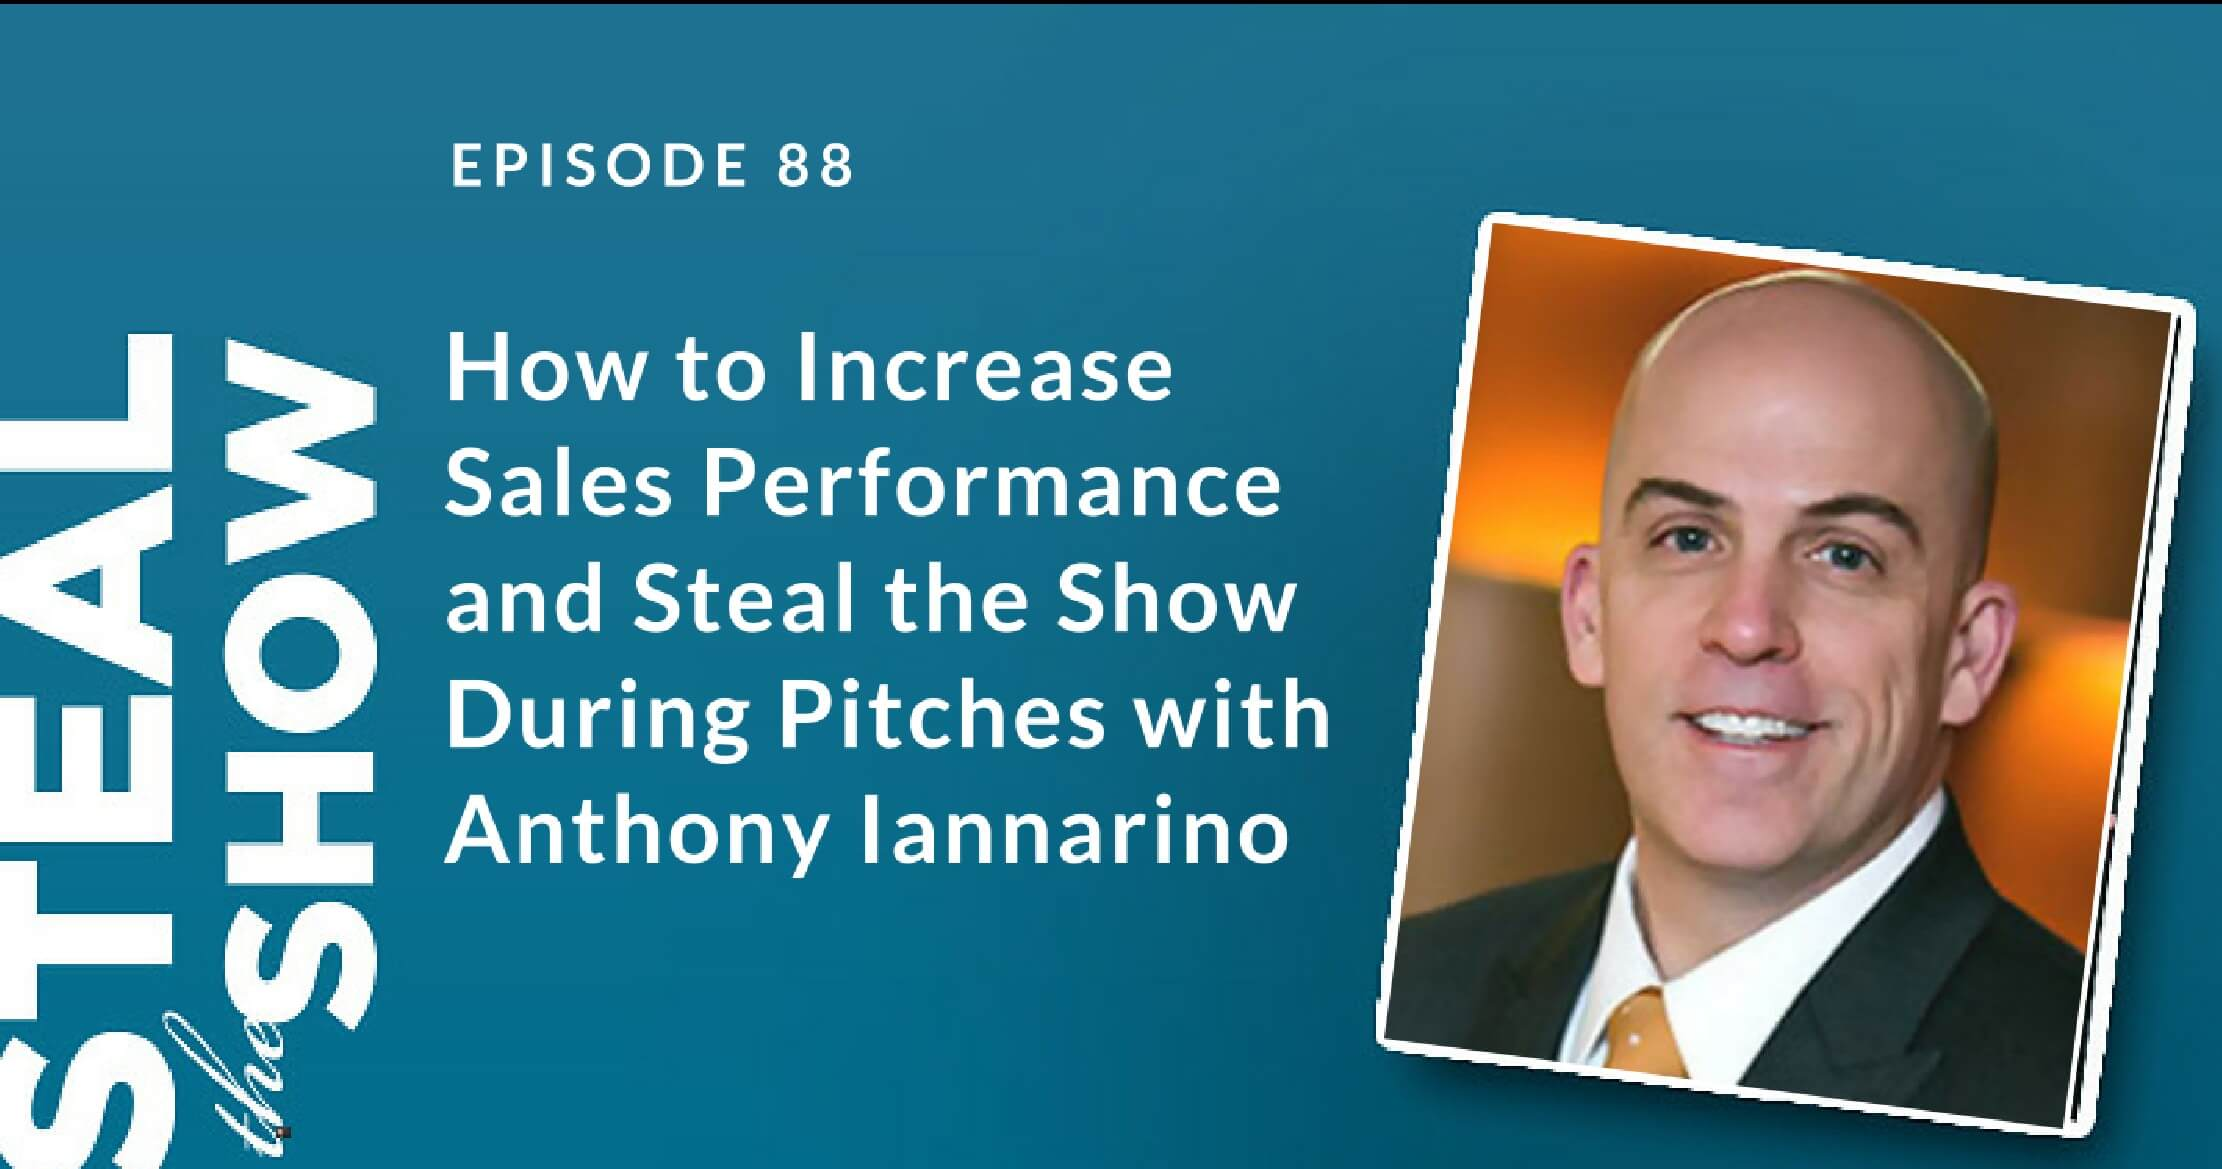 088 How to Increase Sales Performance and Steal the Show During Pitches with Anthony Iannarino